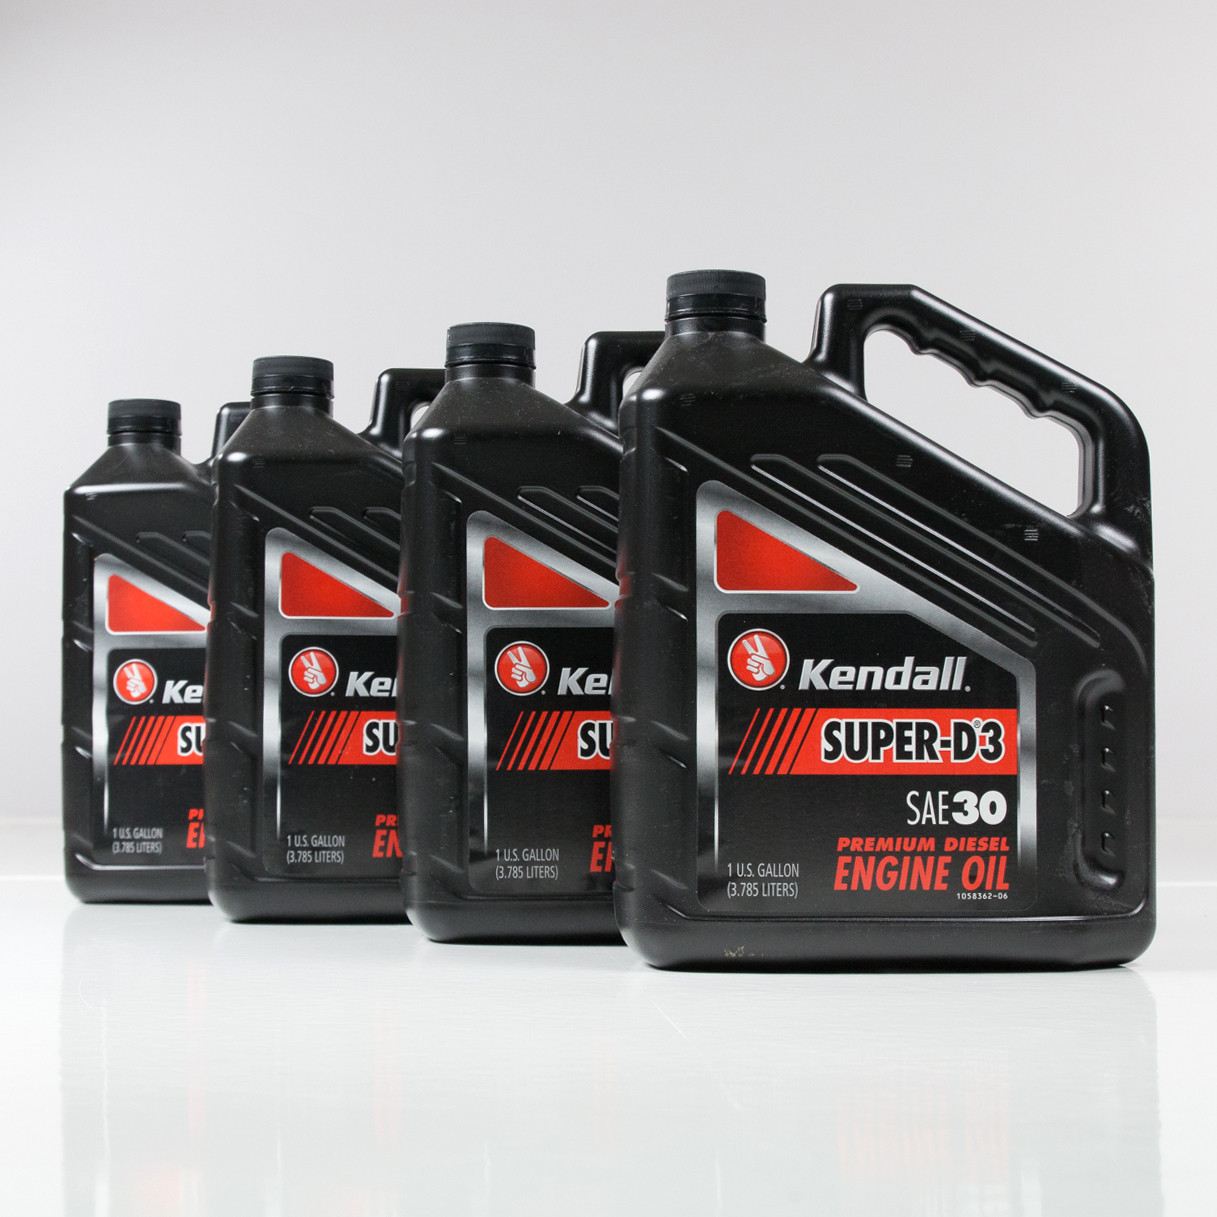 Kendall super d 3 30w engine oil 4 1 gallon case for Kendall motor oil distributors